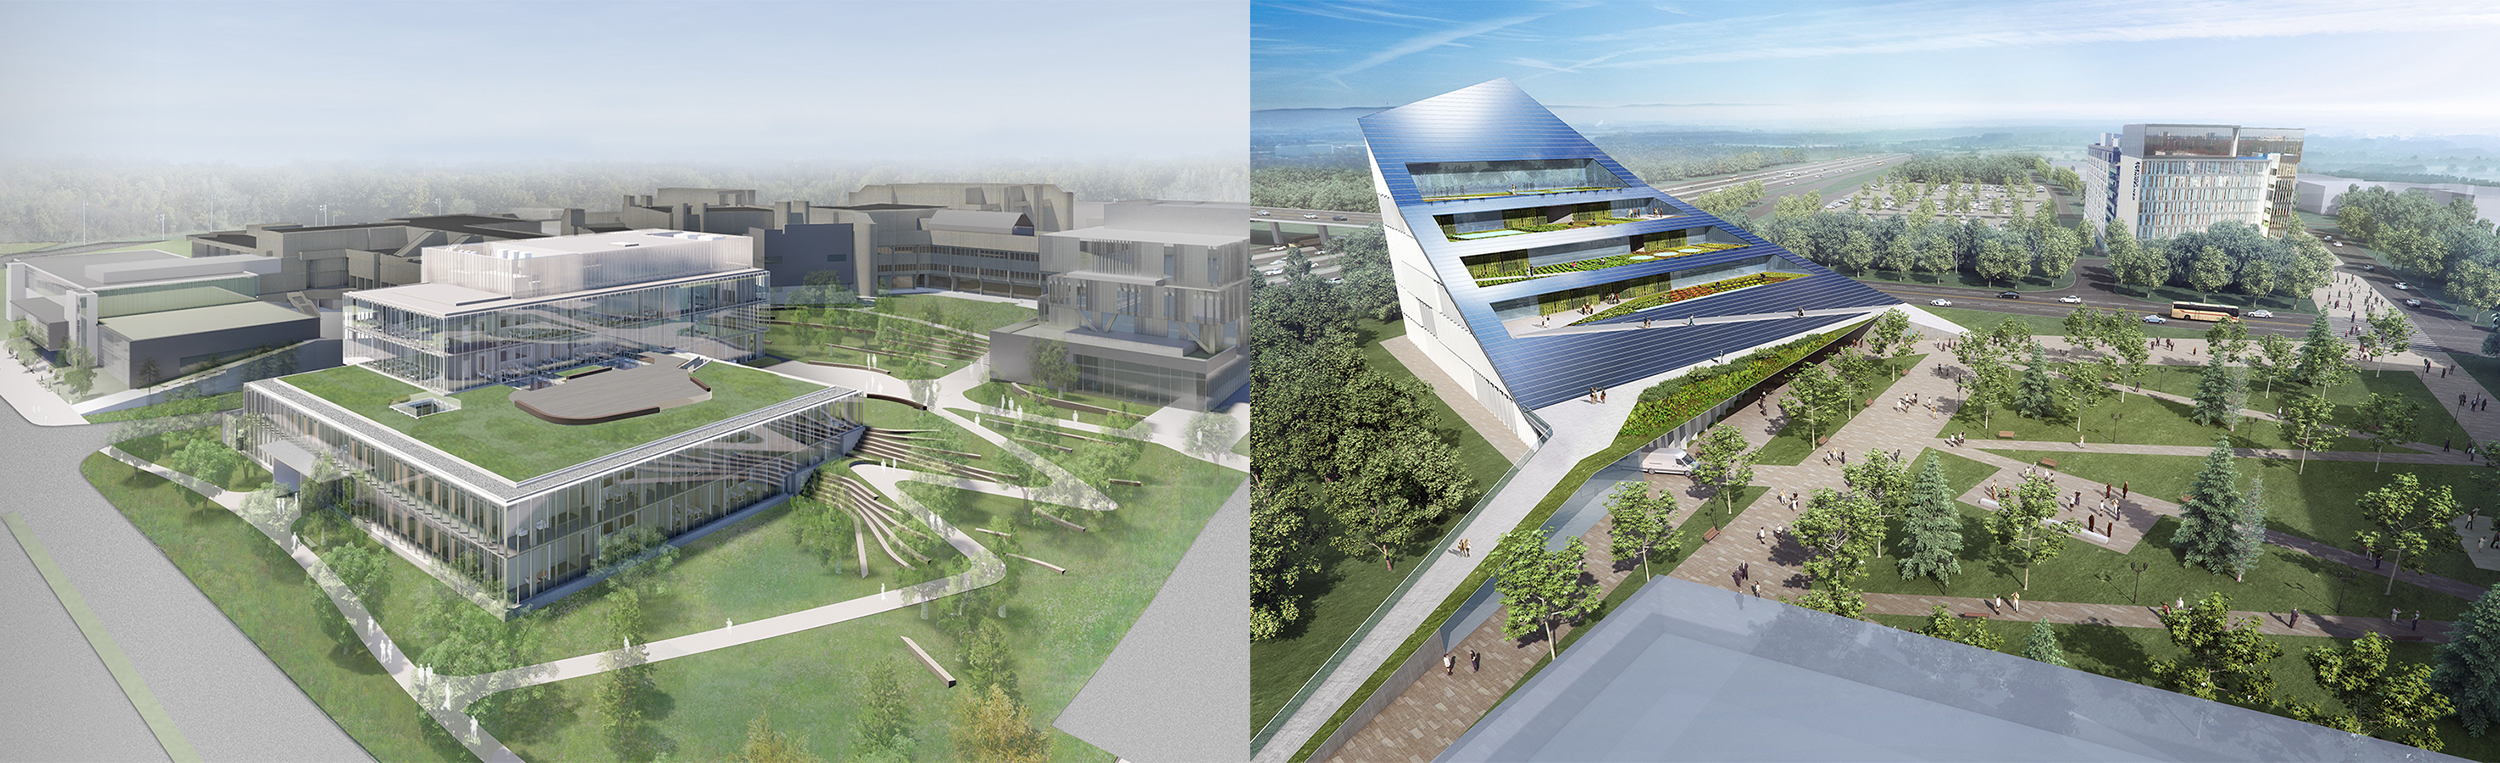 Renderings of the top and sides of the UTM Science Building on the left and a U of T Scarborough vertical farm on the right, both surrounded by grass and trees